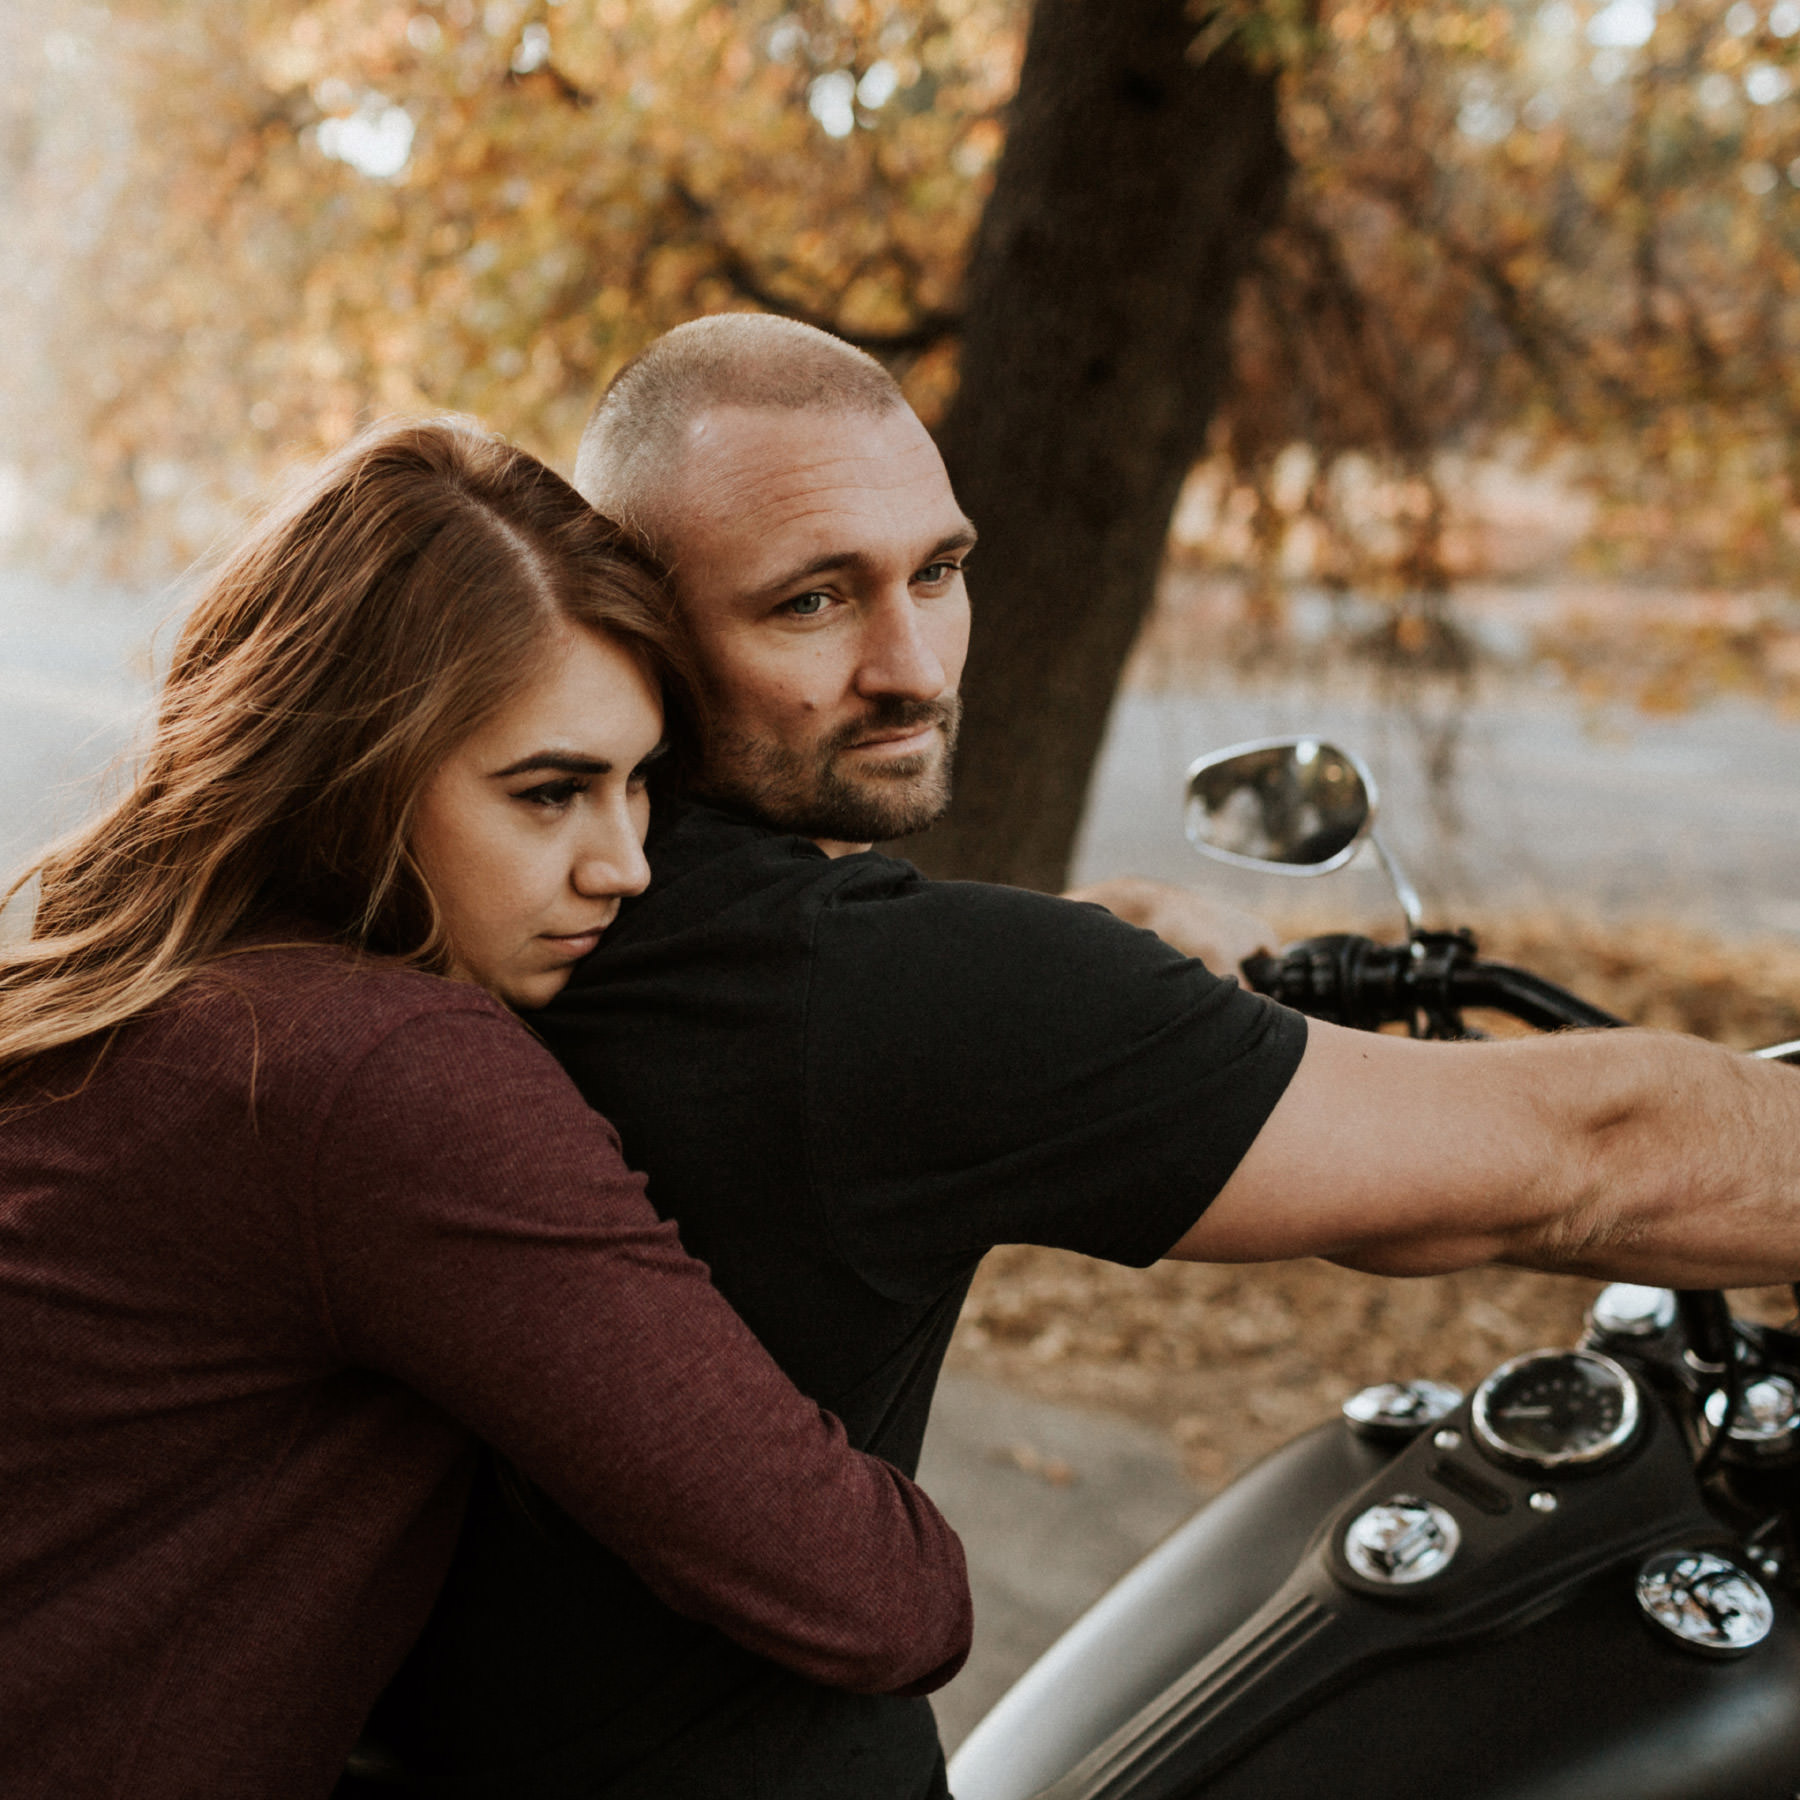 Fall motorcyle couple